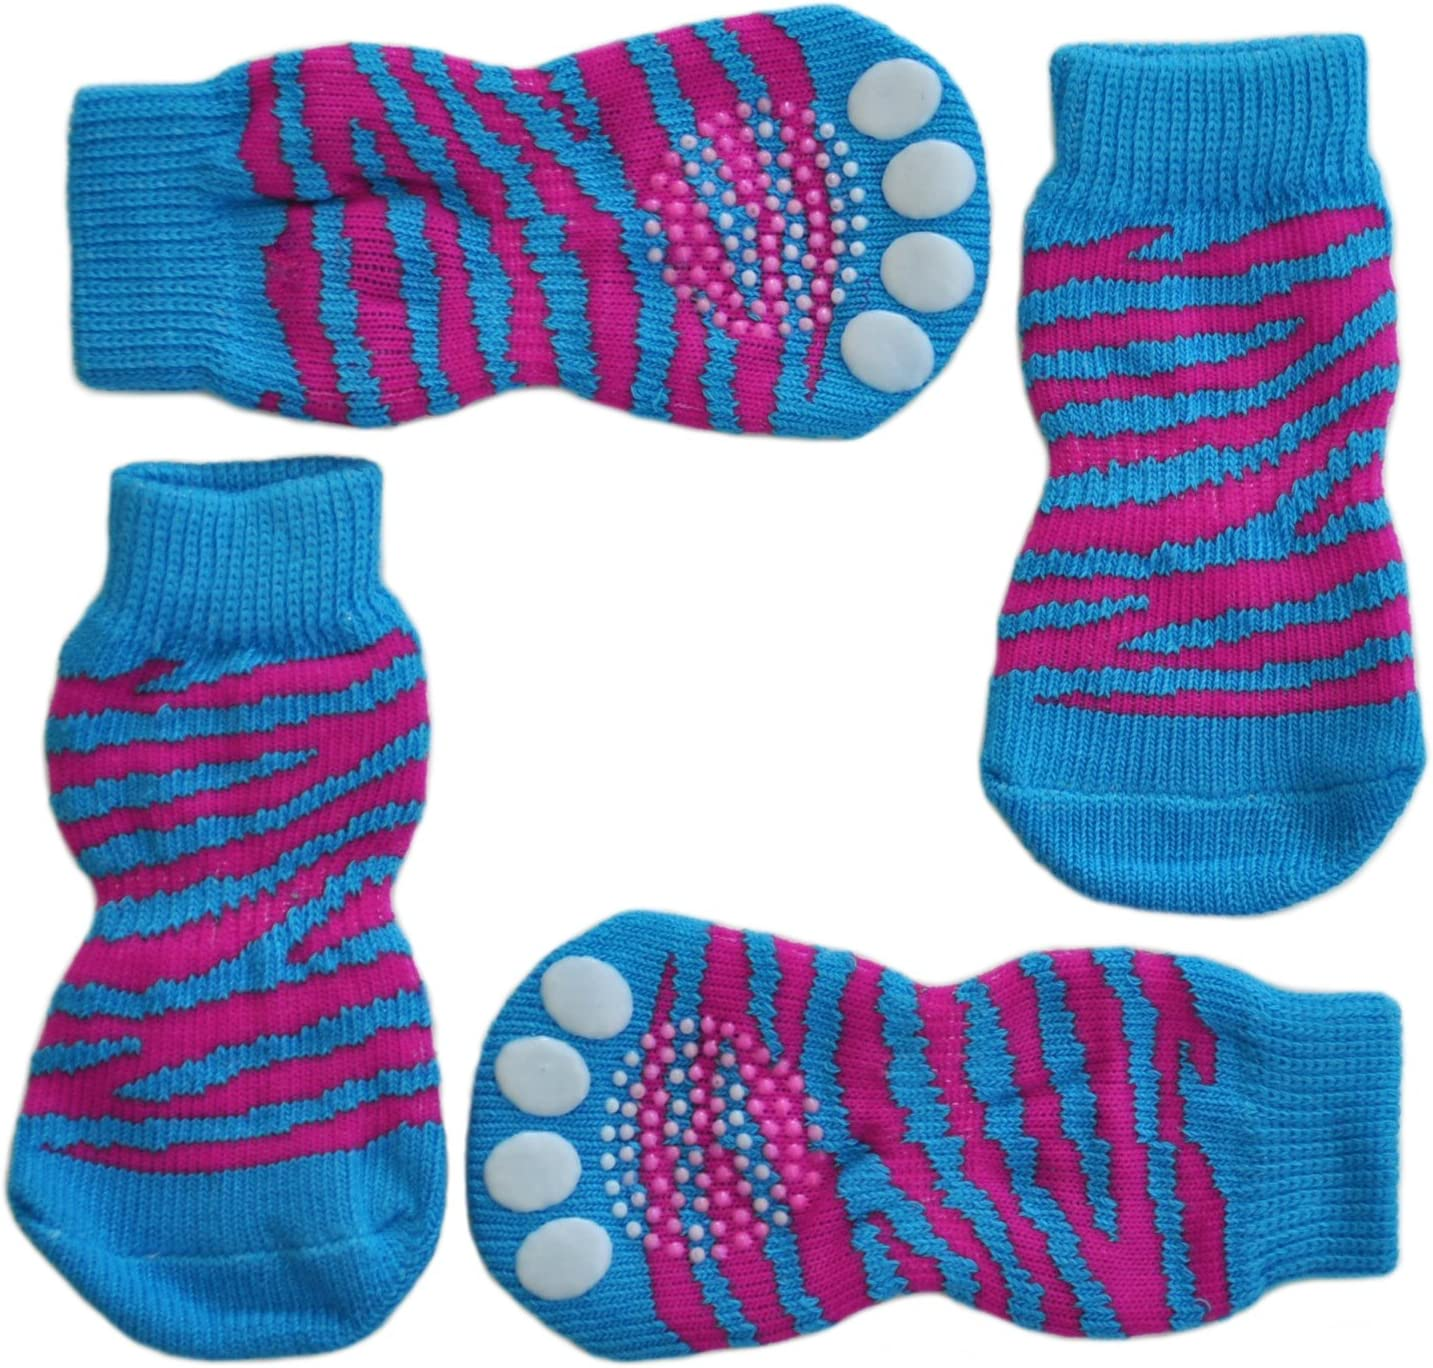 Slip On Paw Protectors Posch Anti-Slip Knit Socks for pets with Traction Soles for Indoor Wear